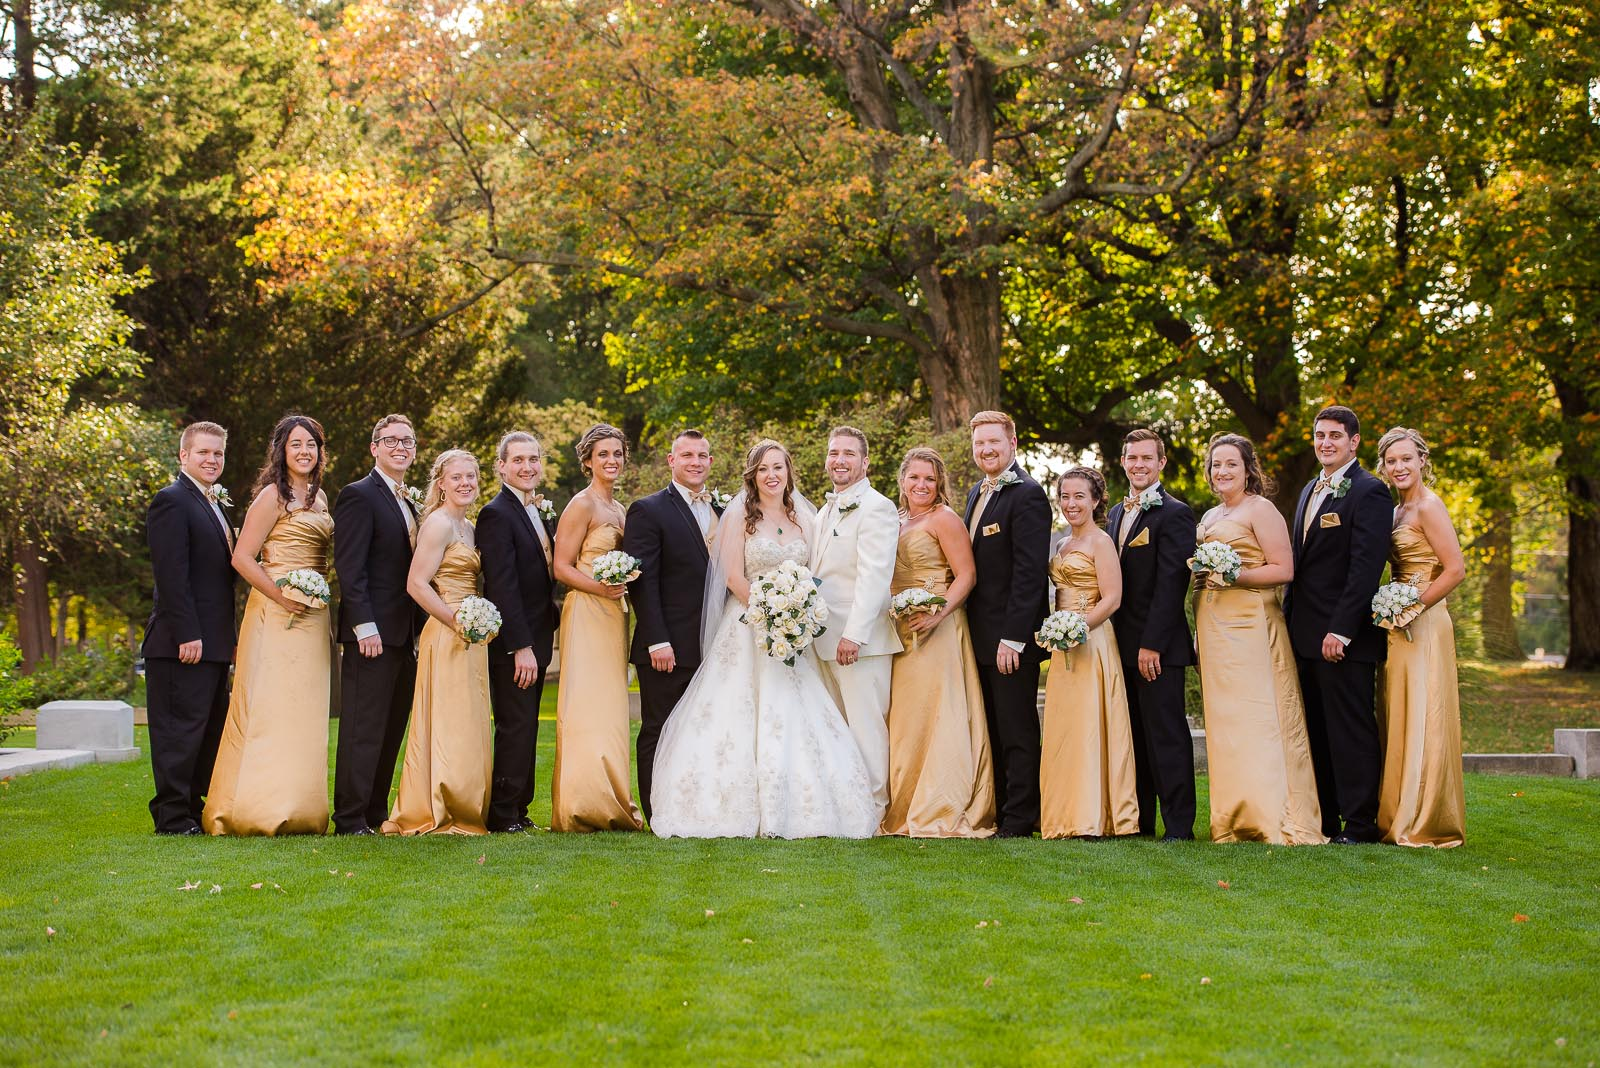 Eric_and_Christy_Photography_Blog_Wedding_Eva_Andrew-20